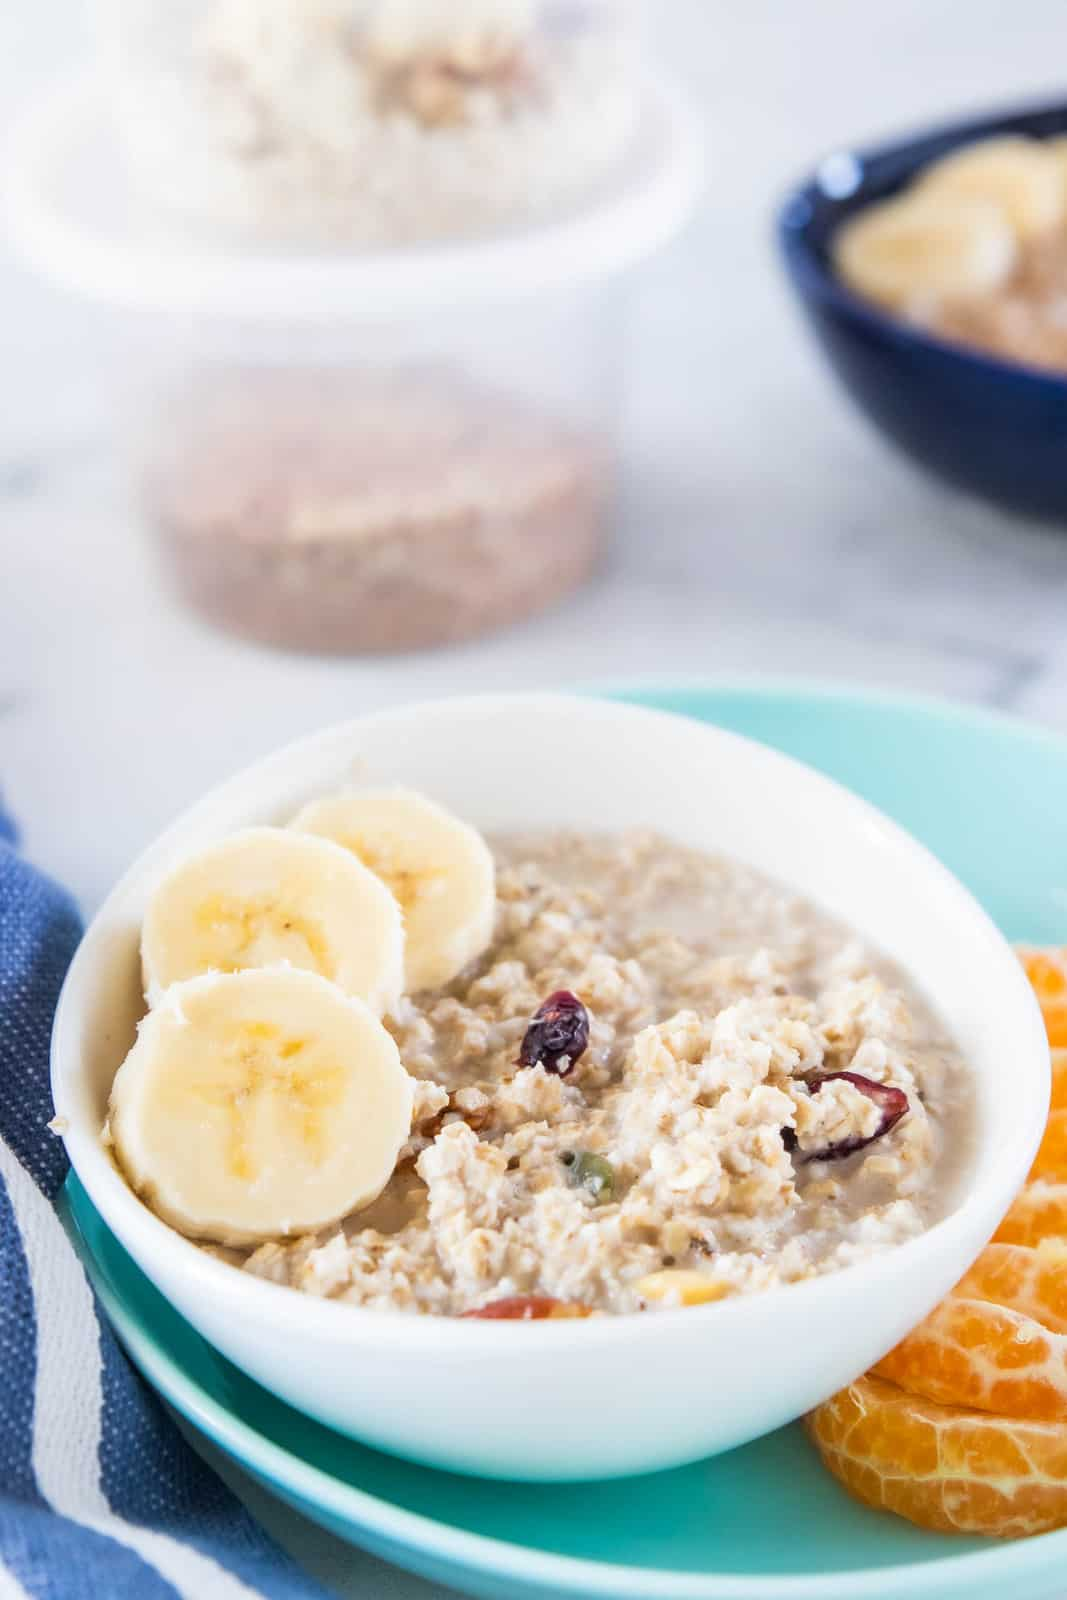 Oatmeal in a white bowl topped with slices of banana.